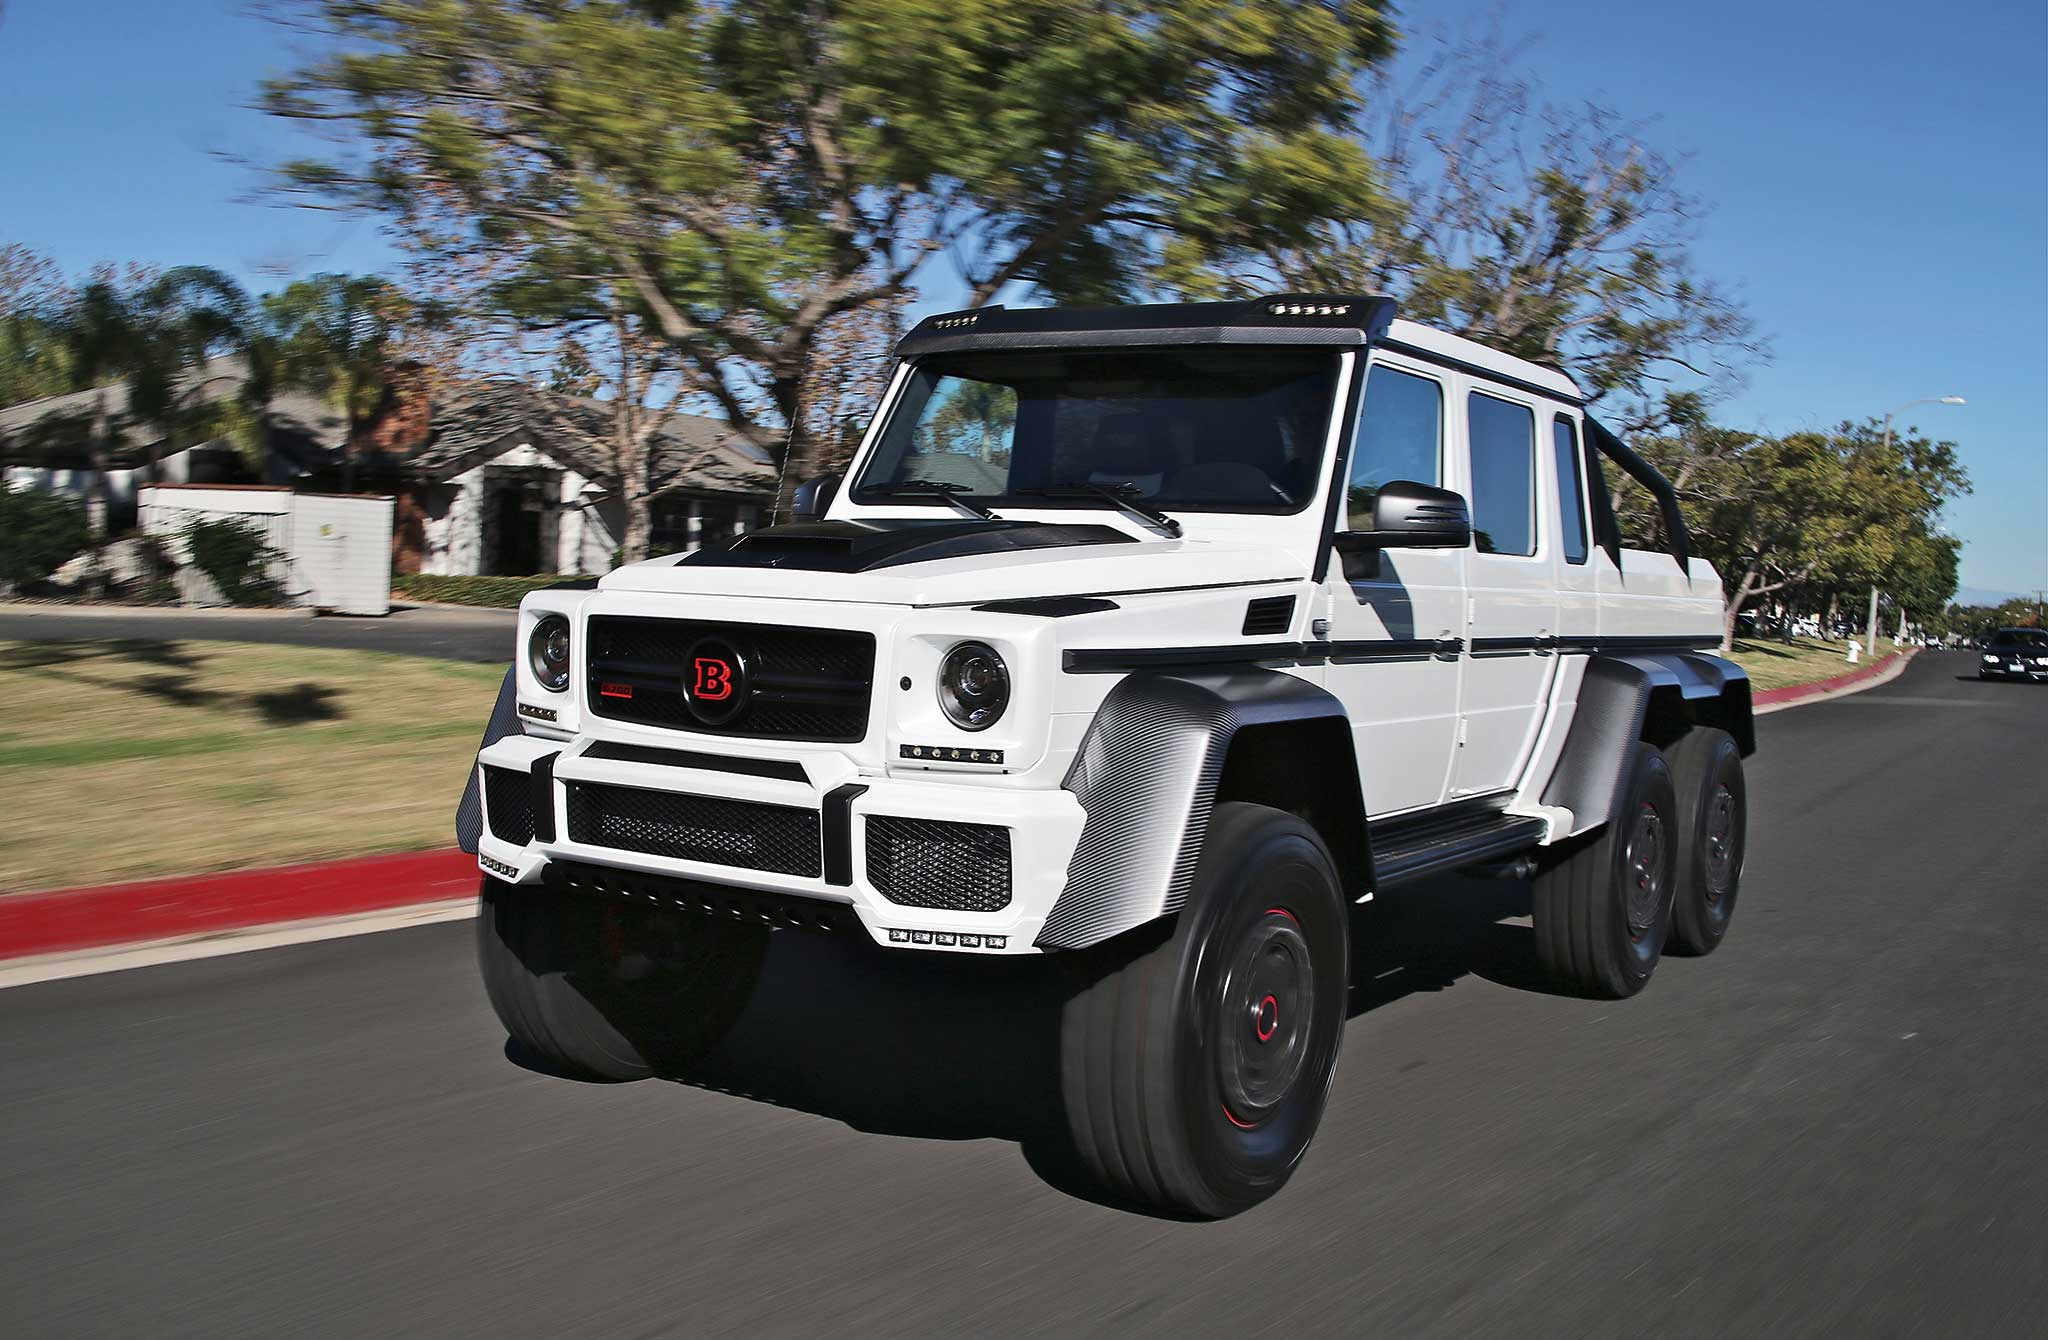 2015 Brabus G63 700 6x6 Driver Side Front View